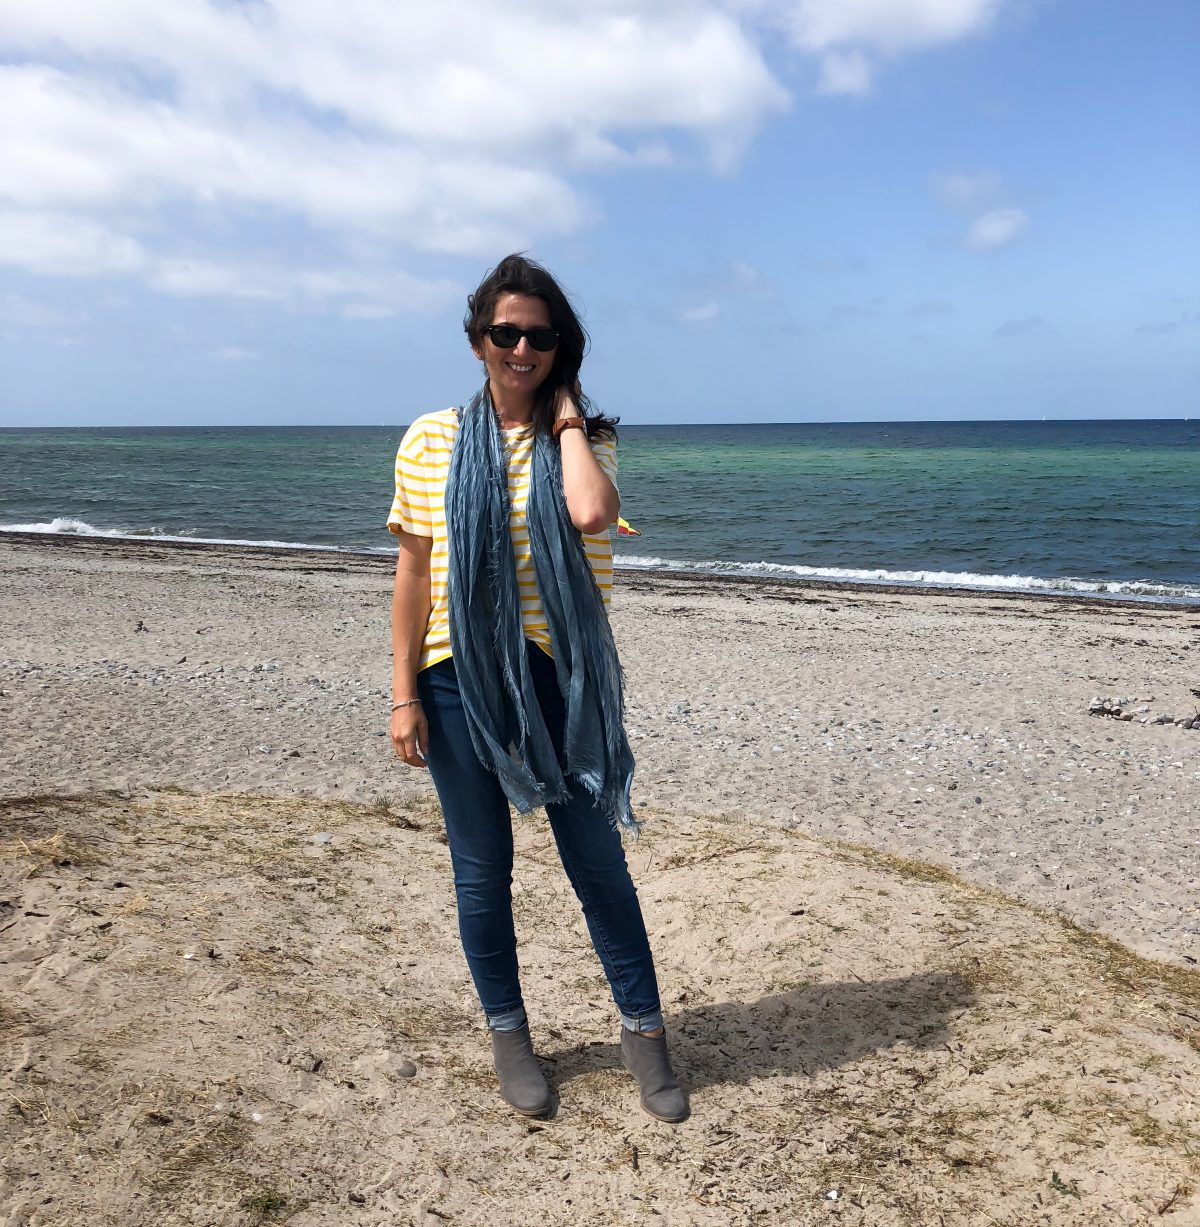 Erin stands on the beach along the Baltic Sea wearing a long scarf.